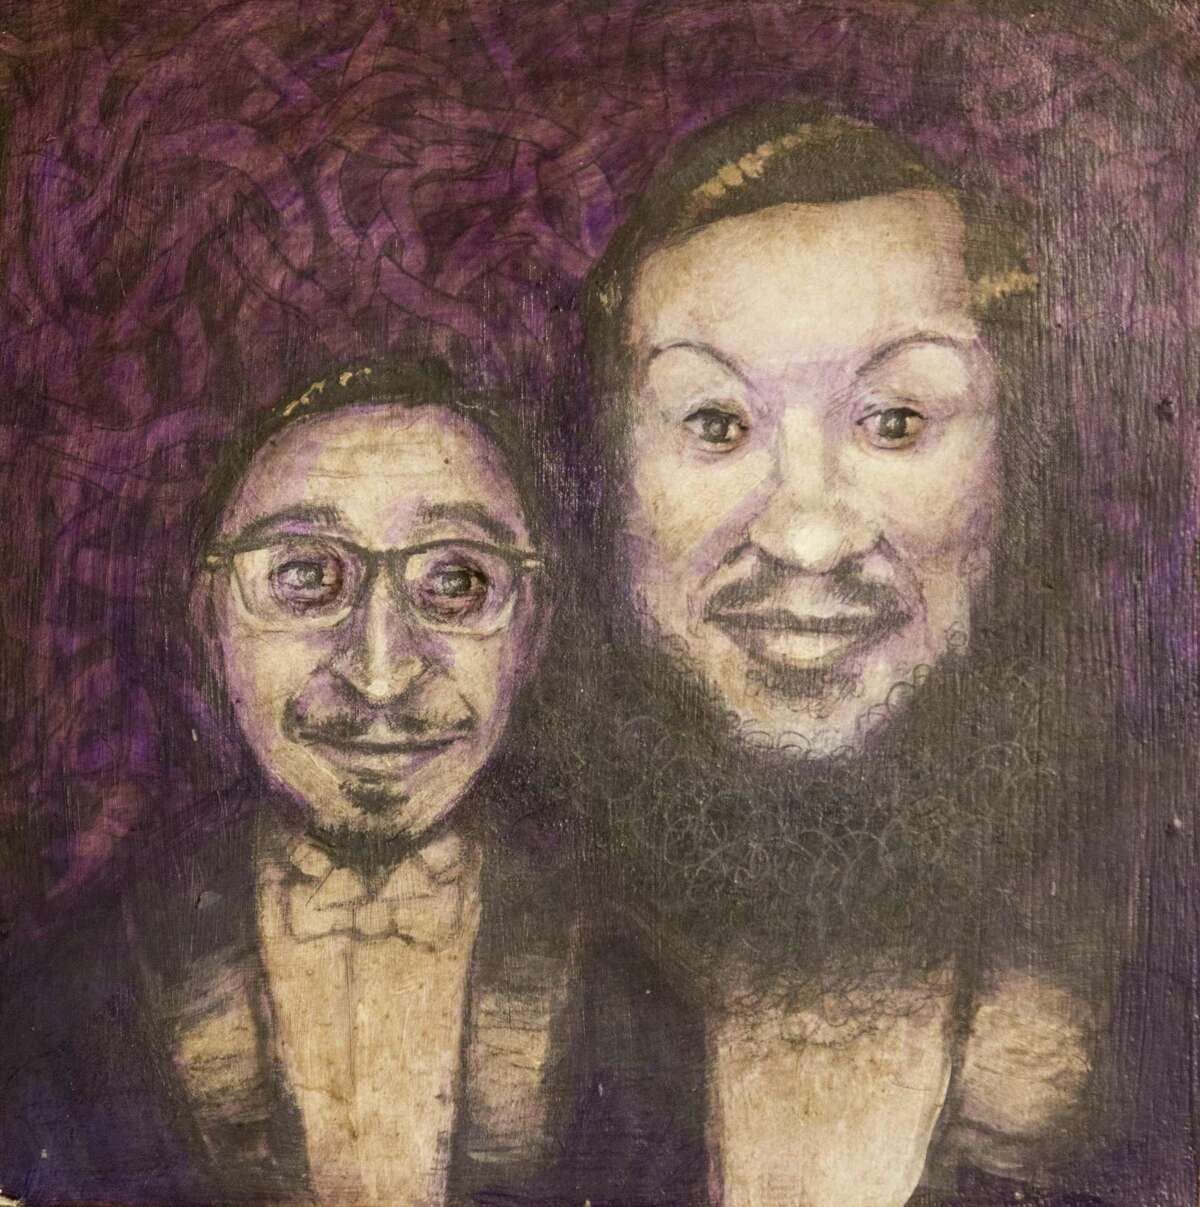 A painting of Stephen, left, and Fred Garza-Guzman hangs in the couple's home. The painting has recessed eyes that appear to follow people as they walk around the room.